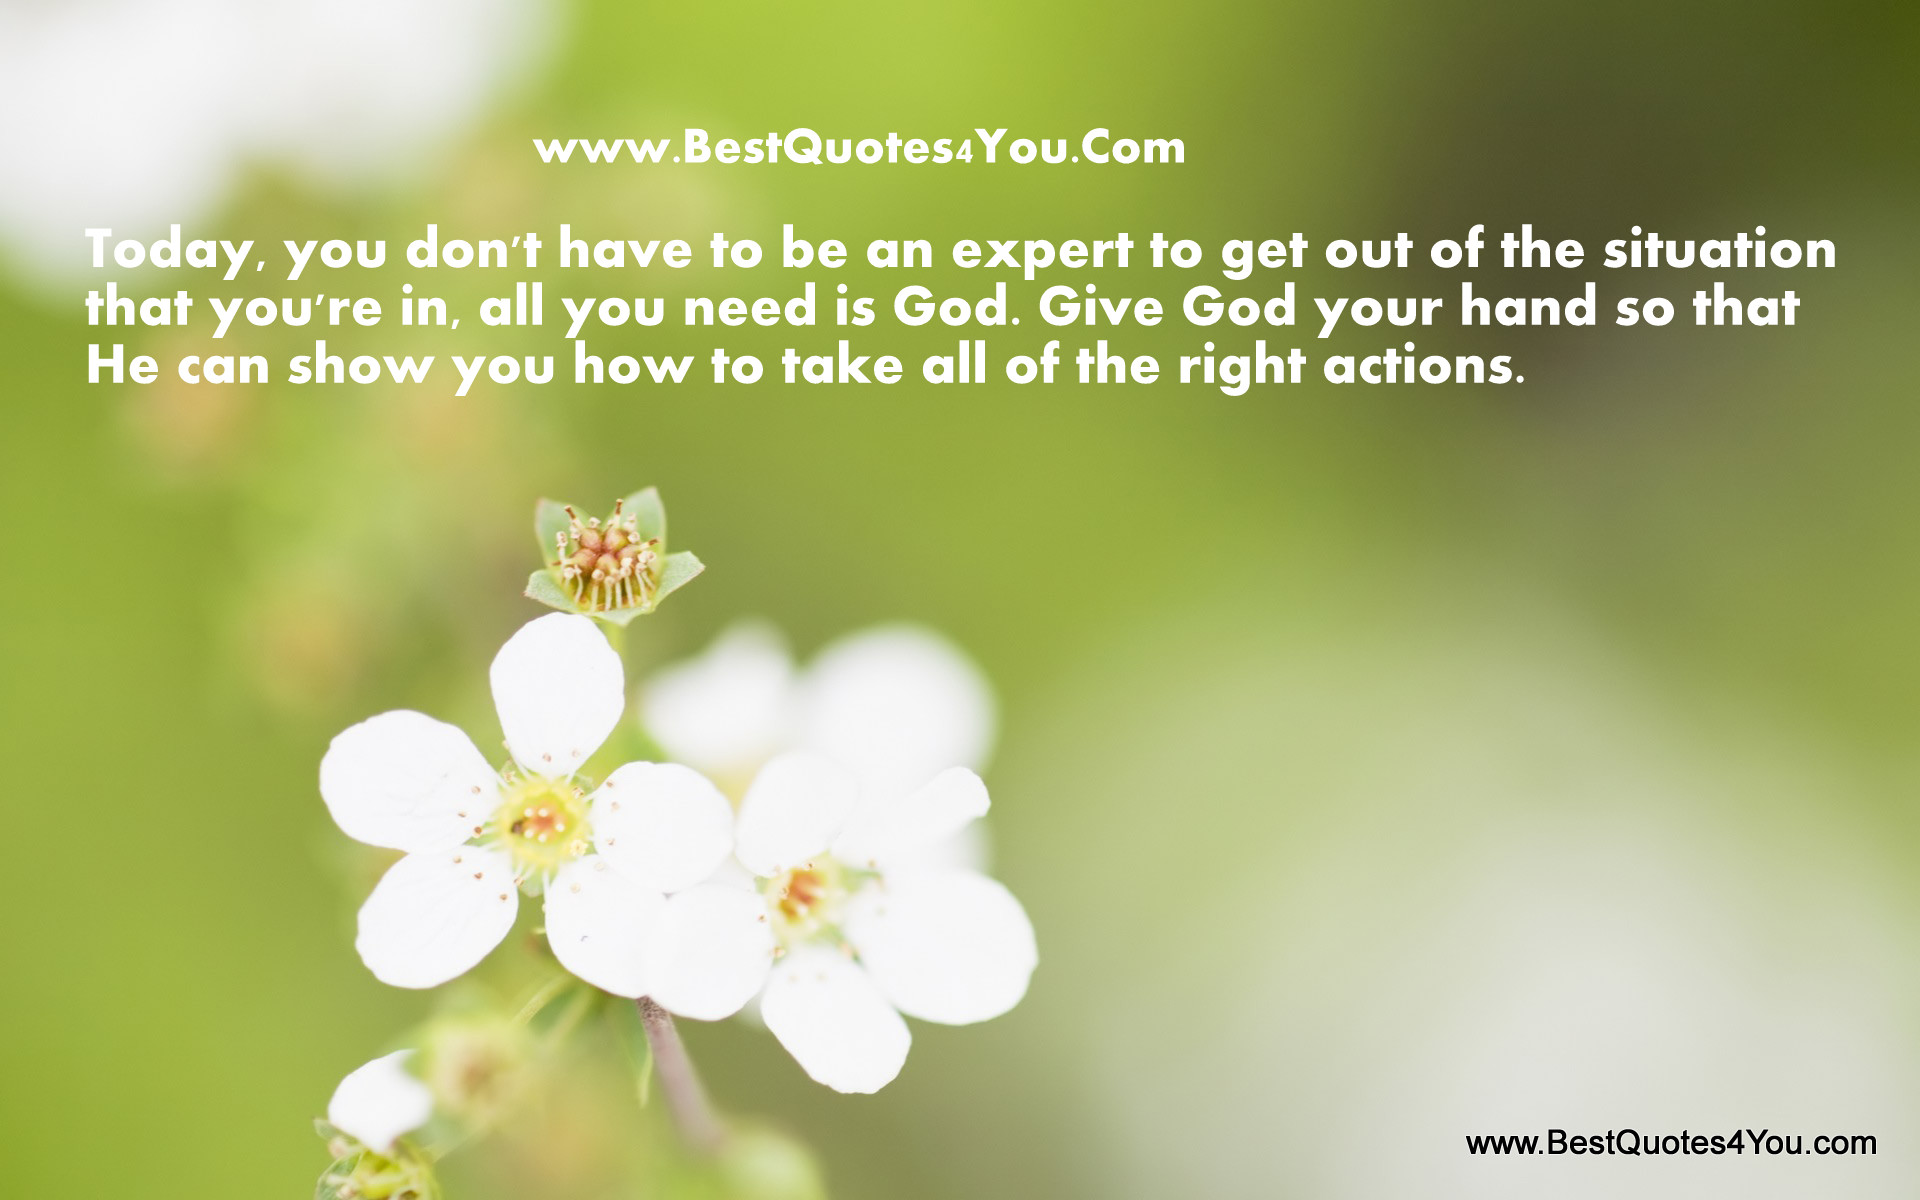 Today, You Donu0027t Have To Be An Expert To Get Out Of